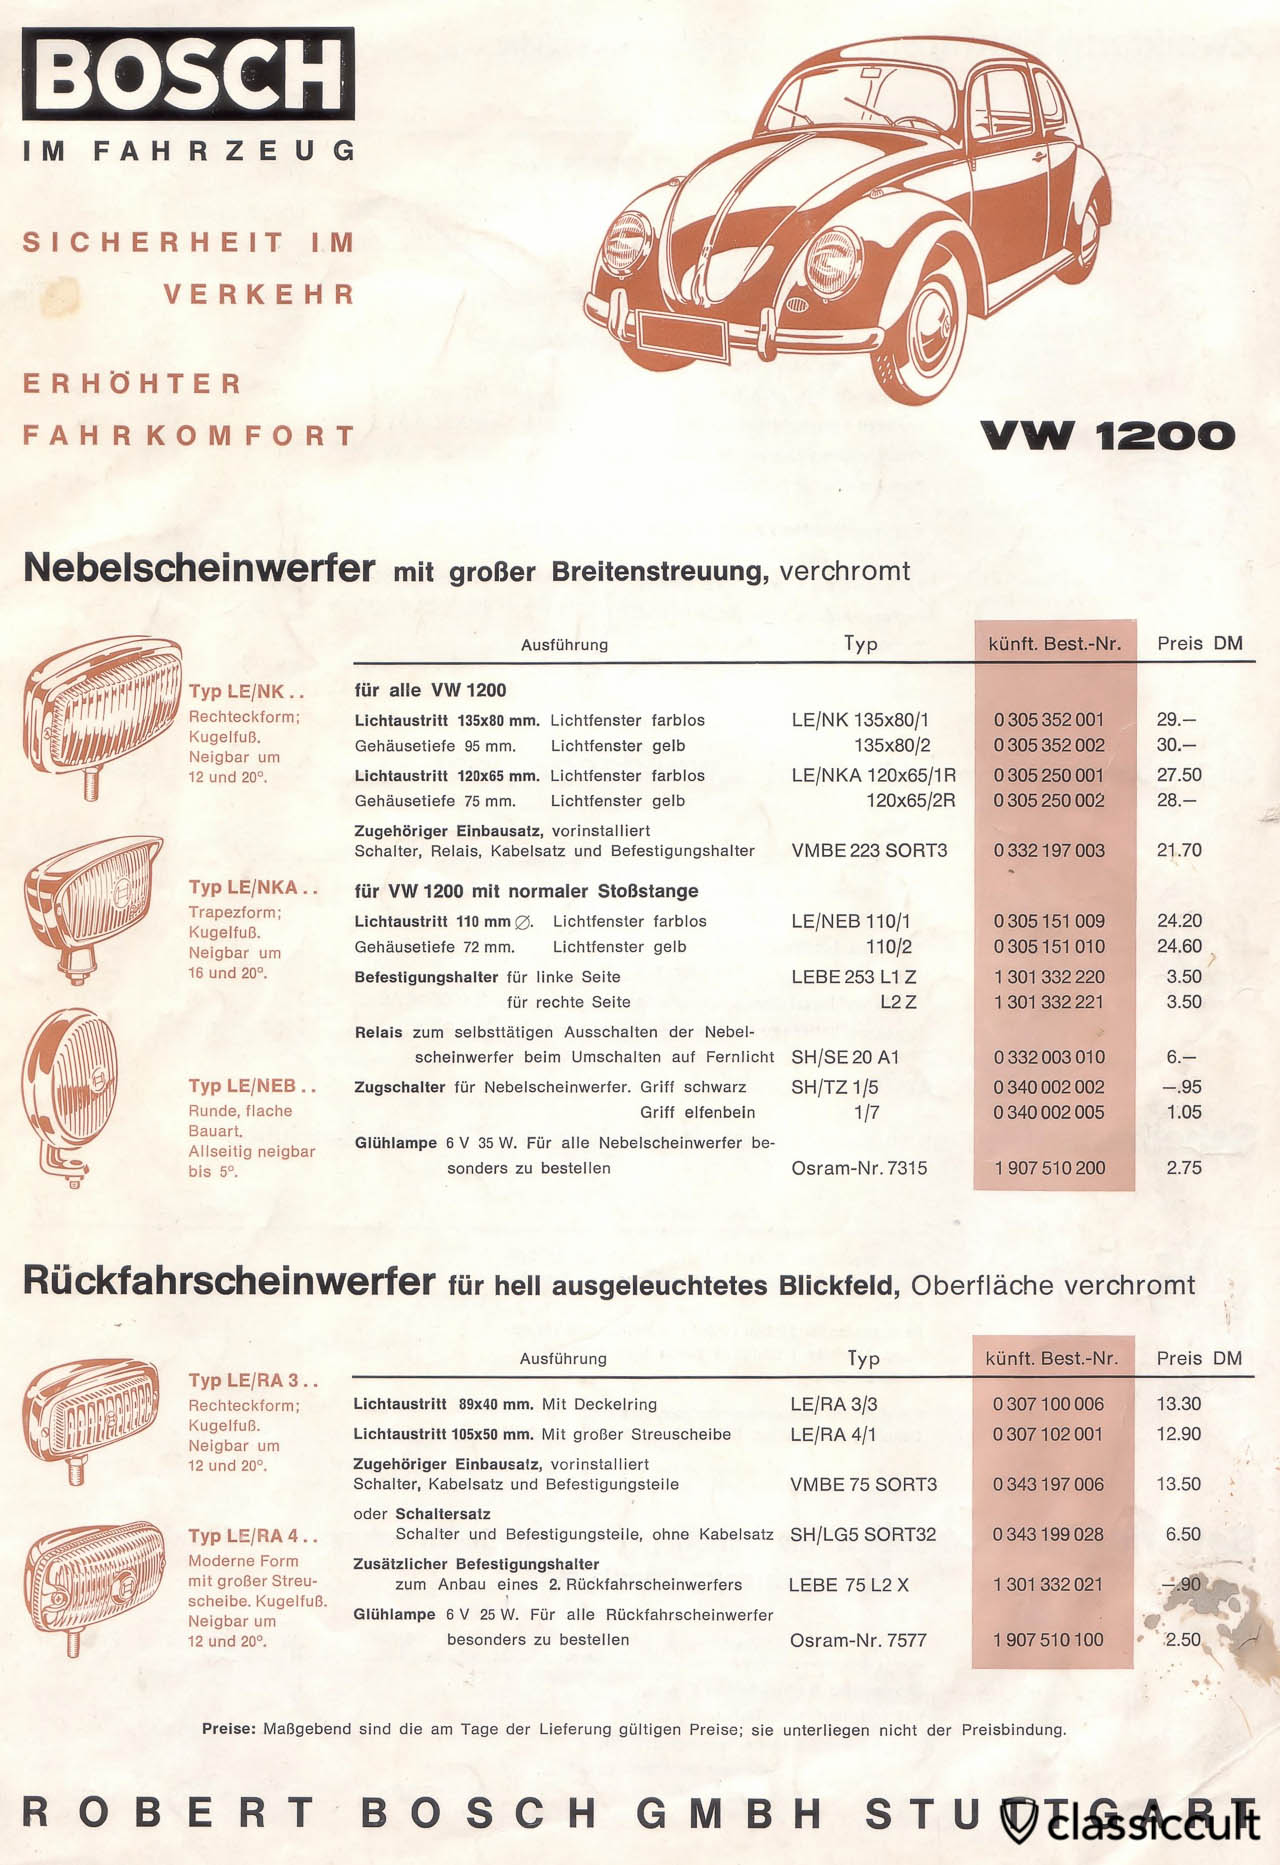 Bosch Fog Lights Brochure VW 1200 1962